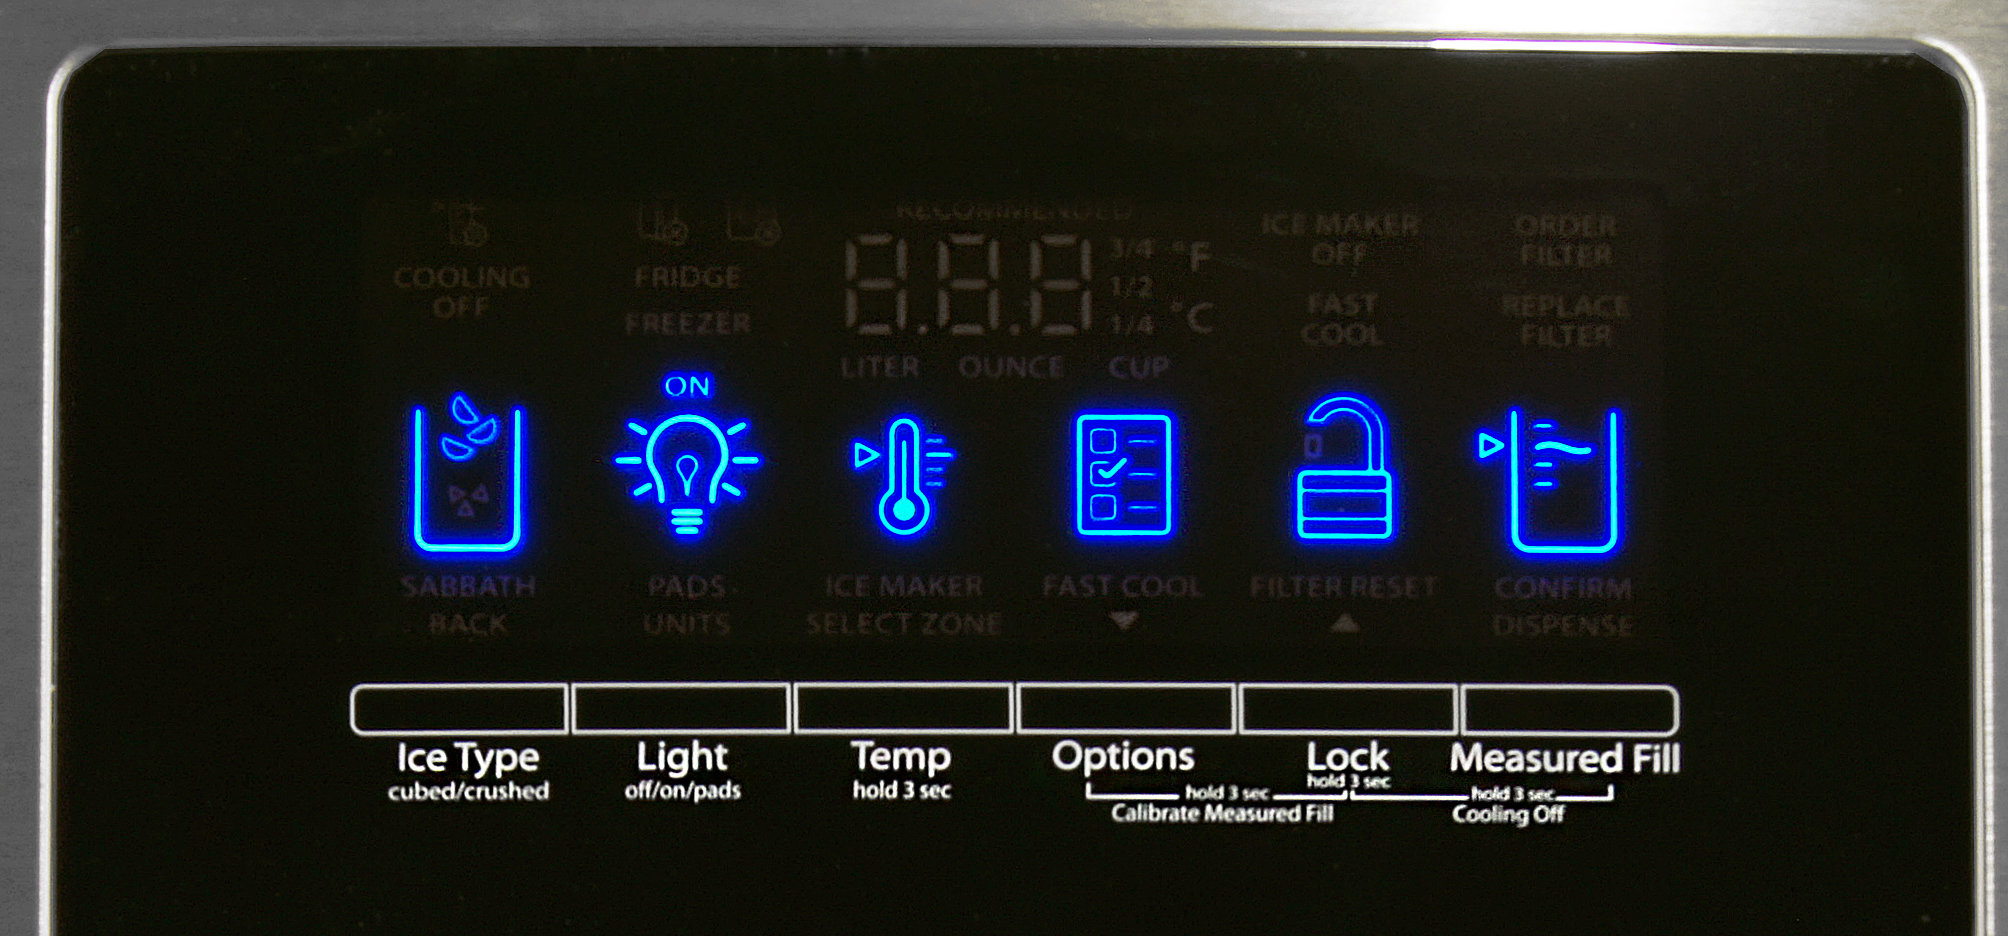 The Whirlpool WRX735SDBM's bright LED controls look great, but it's not a terribly fluid interface.